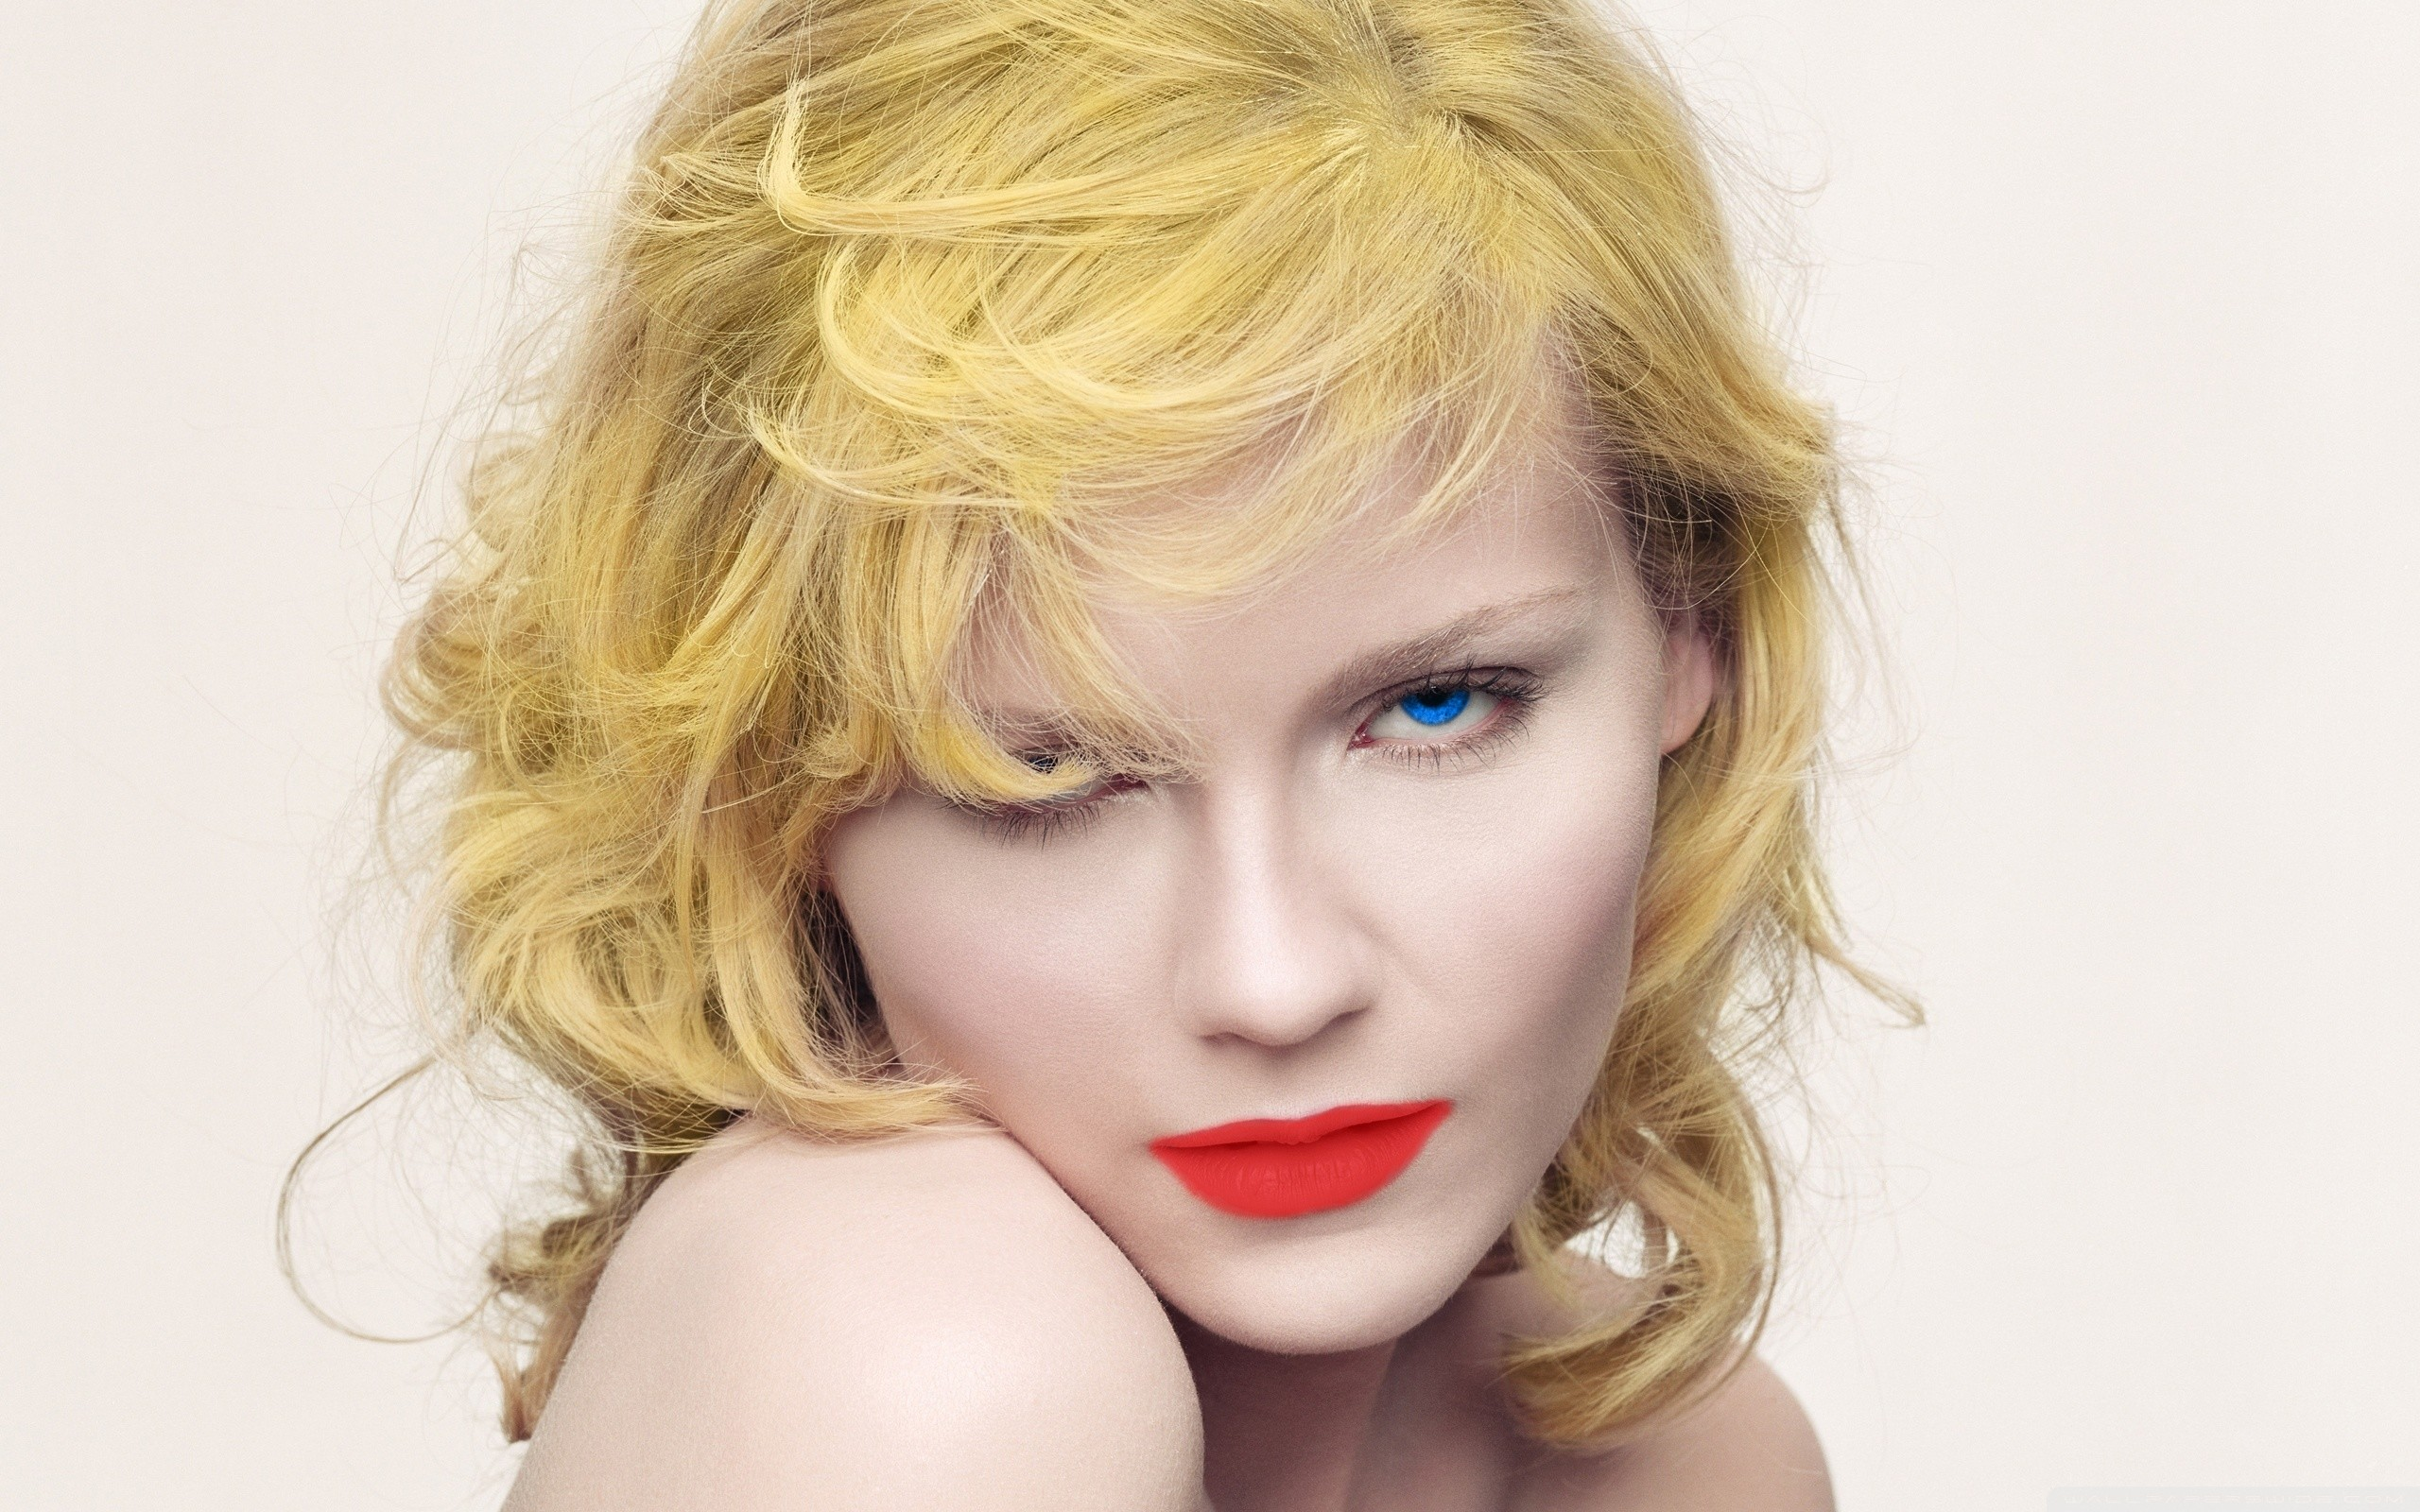 1920x1080 Description Kirsten Dunst Beautiful Hot Sexy Hd Images